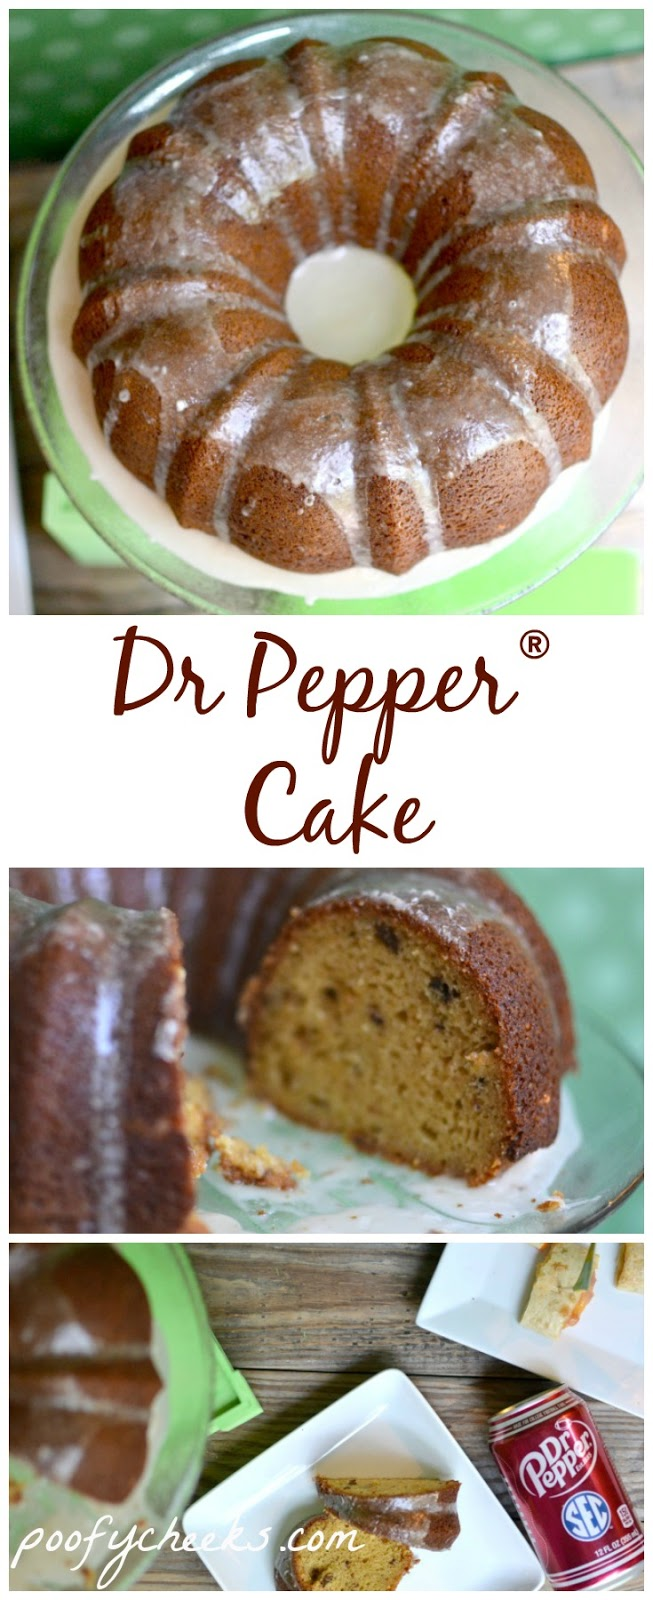 Dr Pepper Bundt Cake makes the perfect dessert for any occasion.